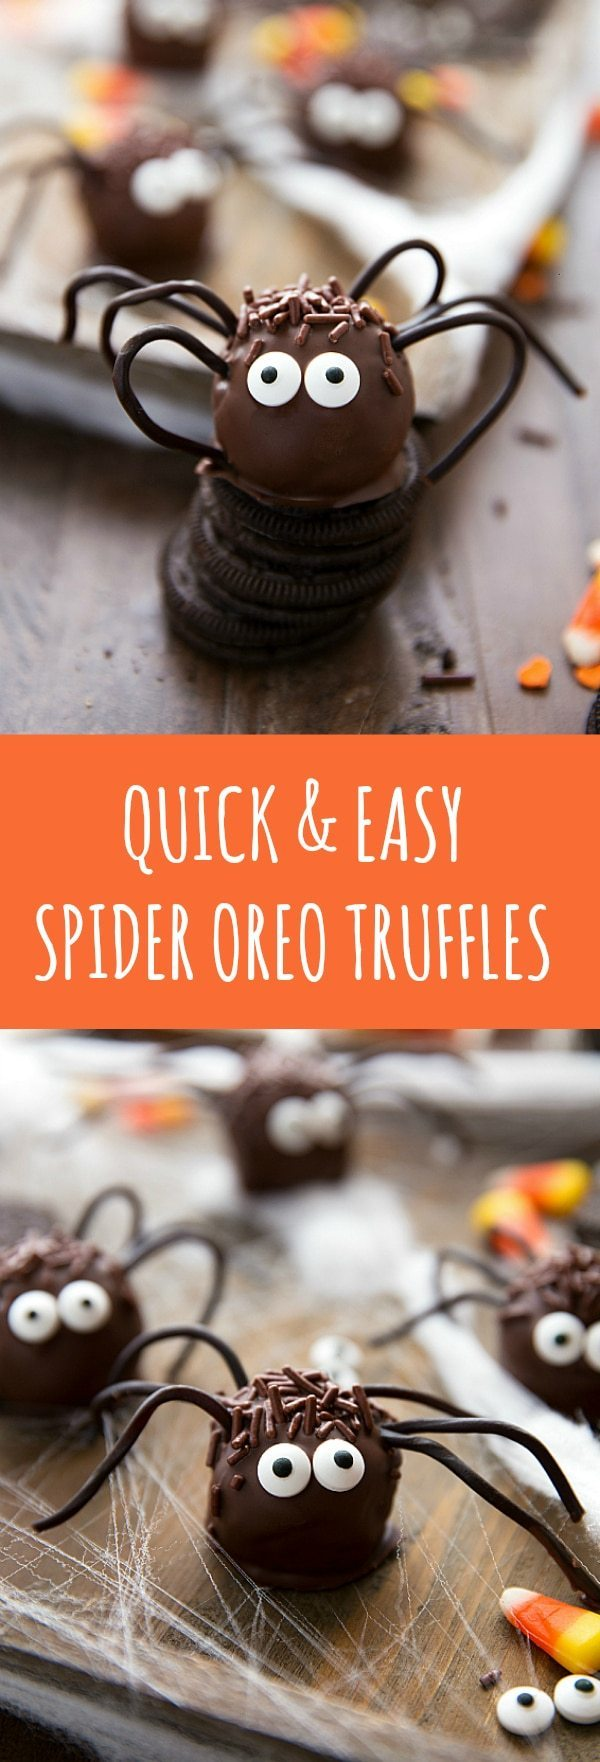 SIMPLE SPIDER OREO TRUFFLES - PERFECT HALLOWEEN TREAT